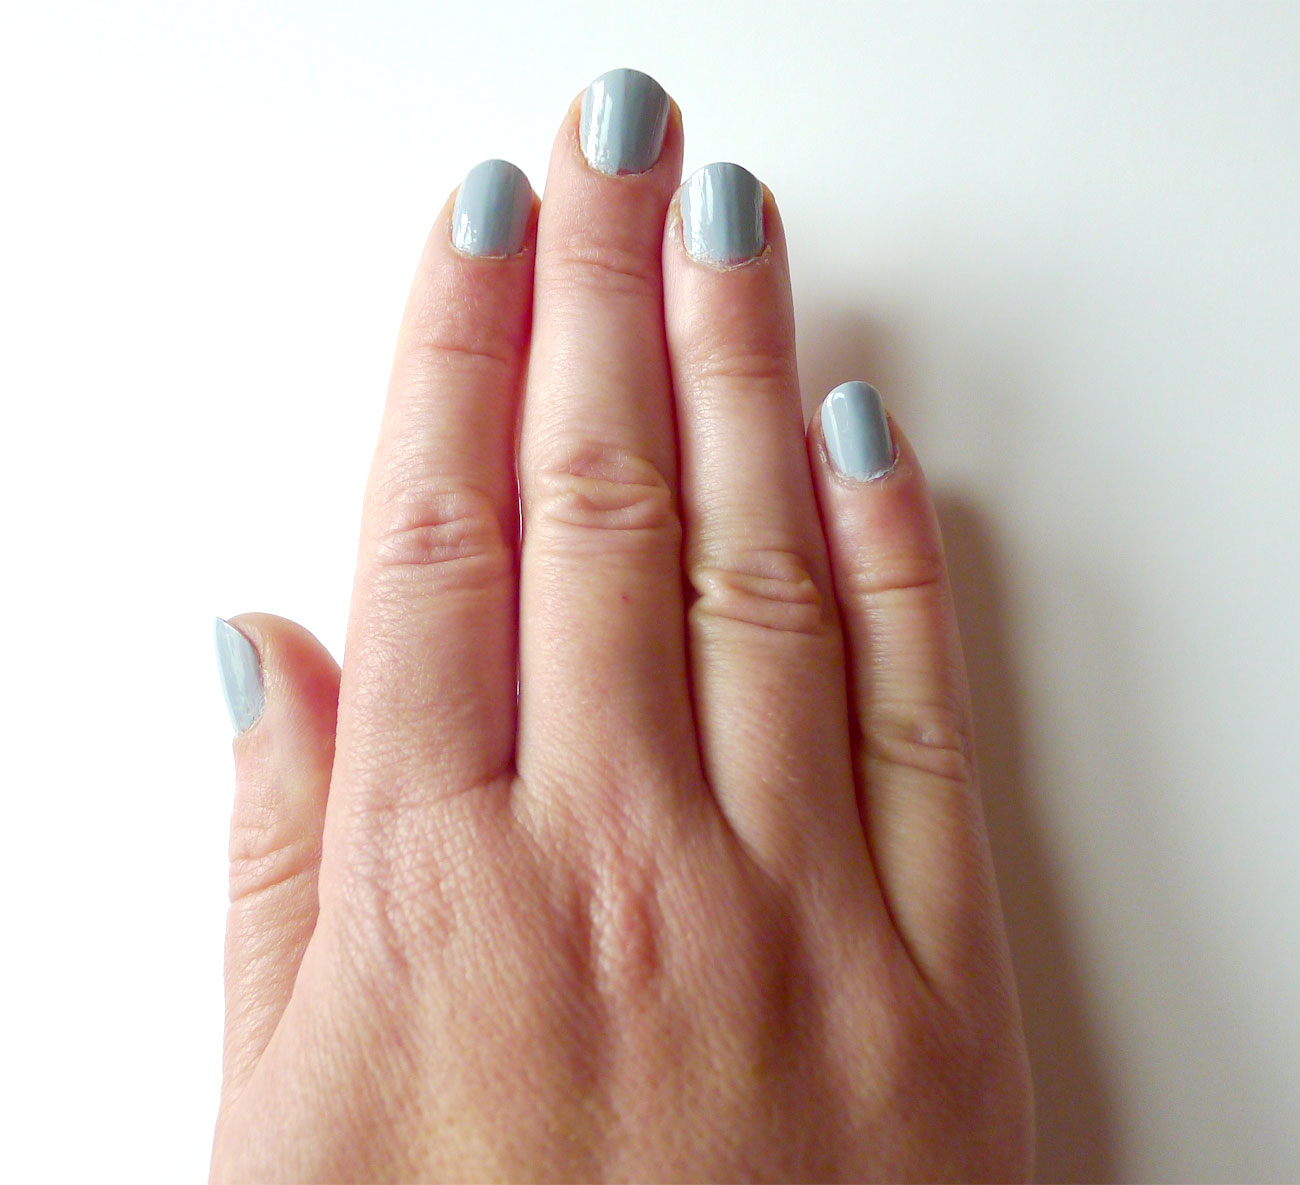 I Channeled My Nail Salon Guilt Into Being An At Home Manicure Expert Racked